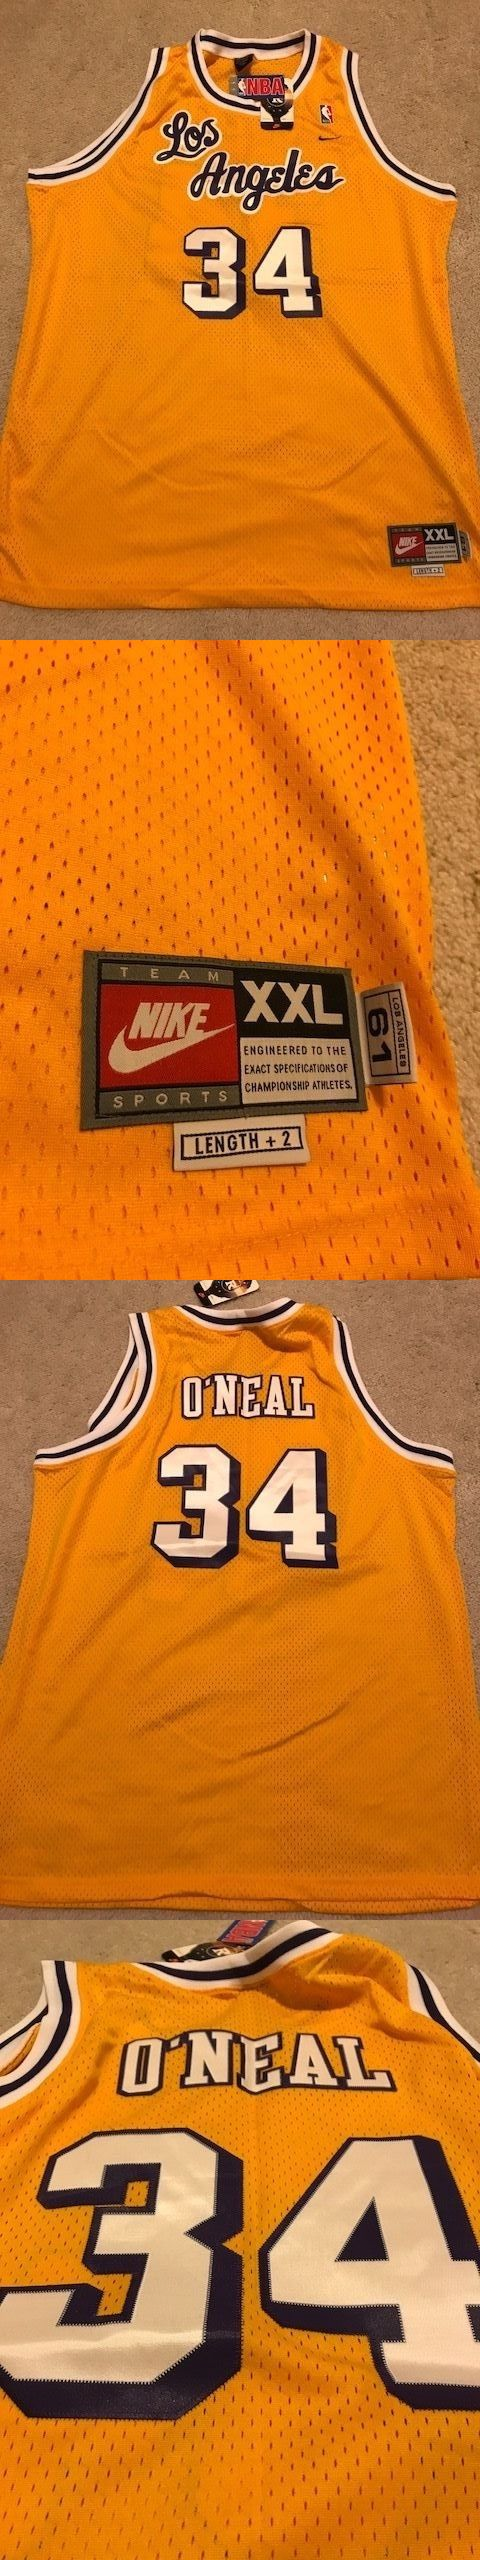 Basketball-NBA 24442: New Nike Los Angeles Lakers Throwback Jersey Shaquille O Neal Size 54 Showtime -> BUY IT NOW ONLY: $125 on eBay!